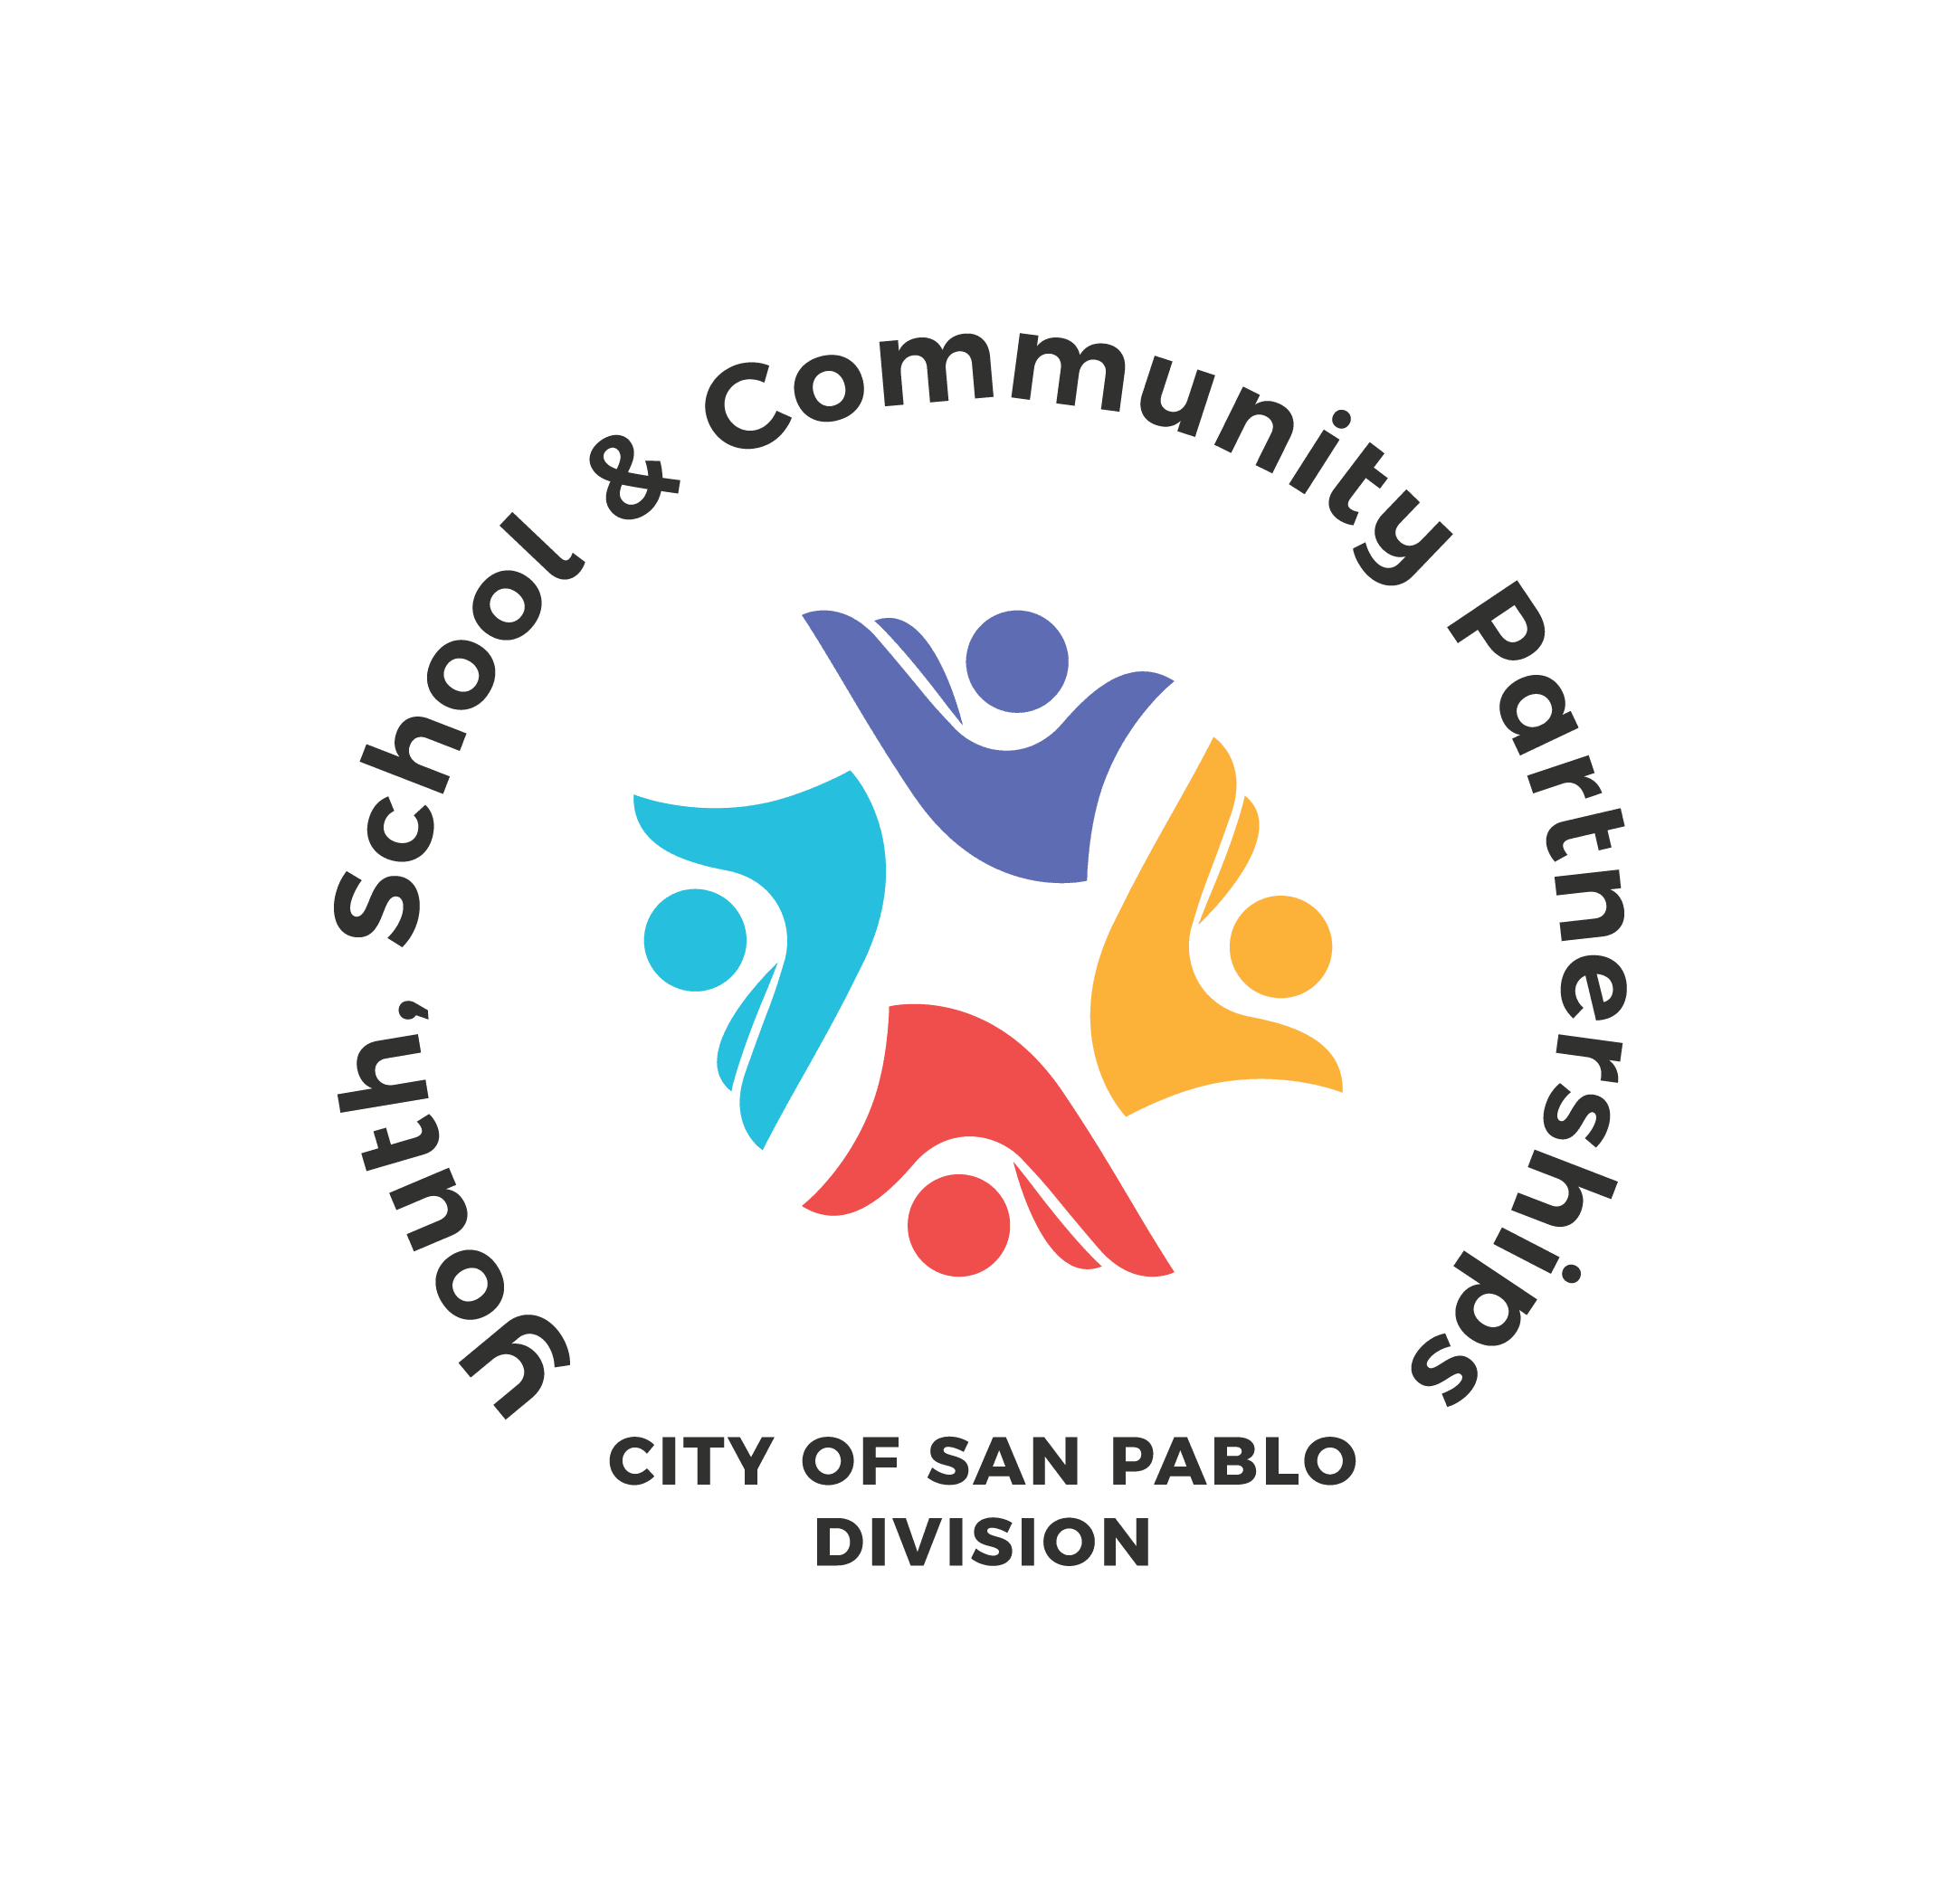 Youth, School, & Community Partnerships Division Logo